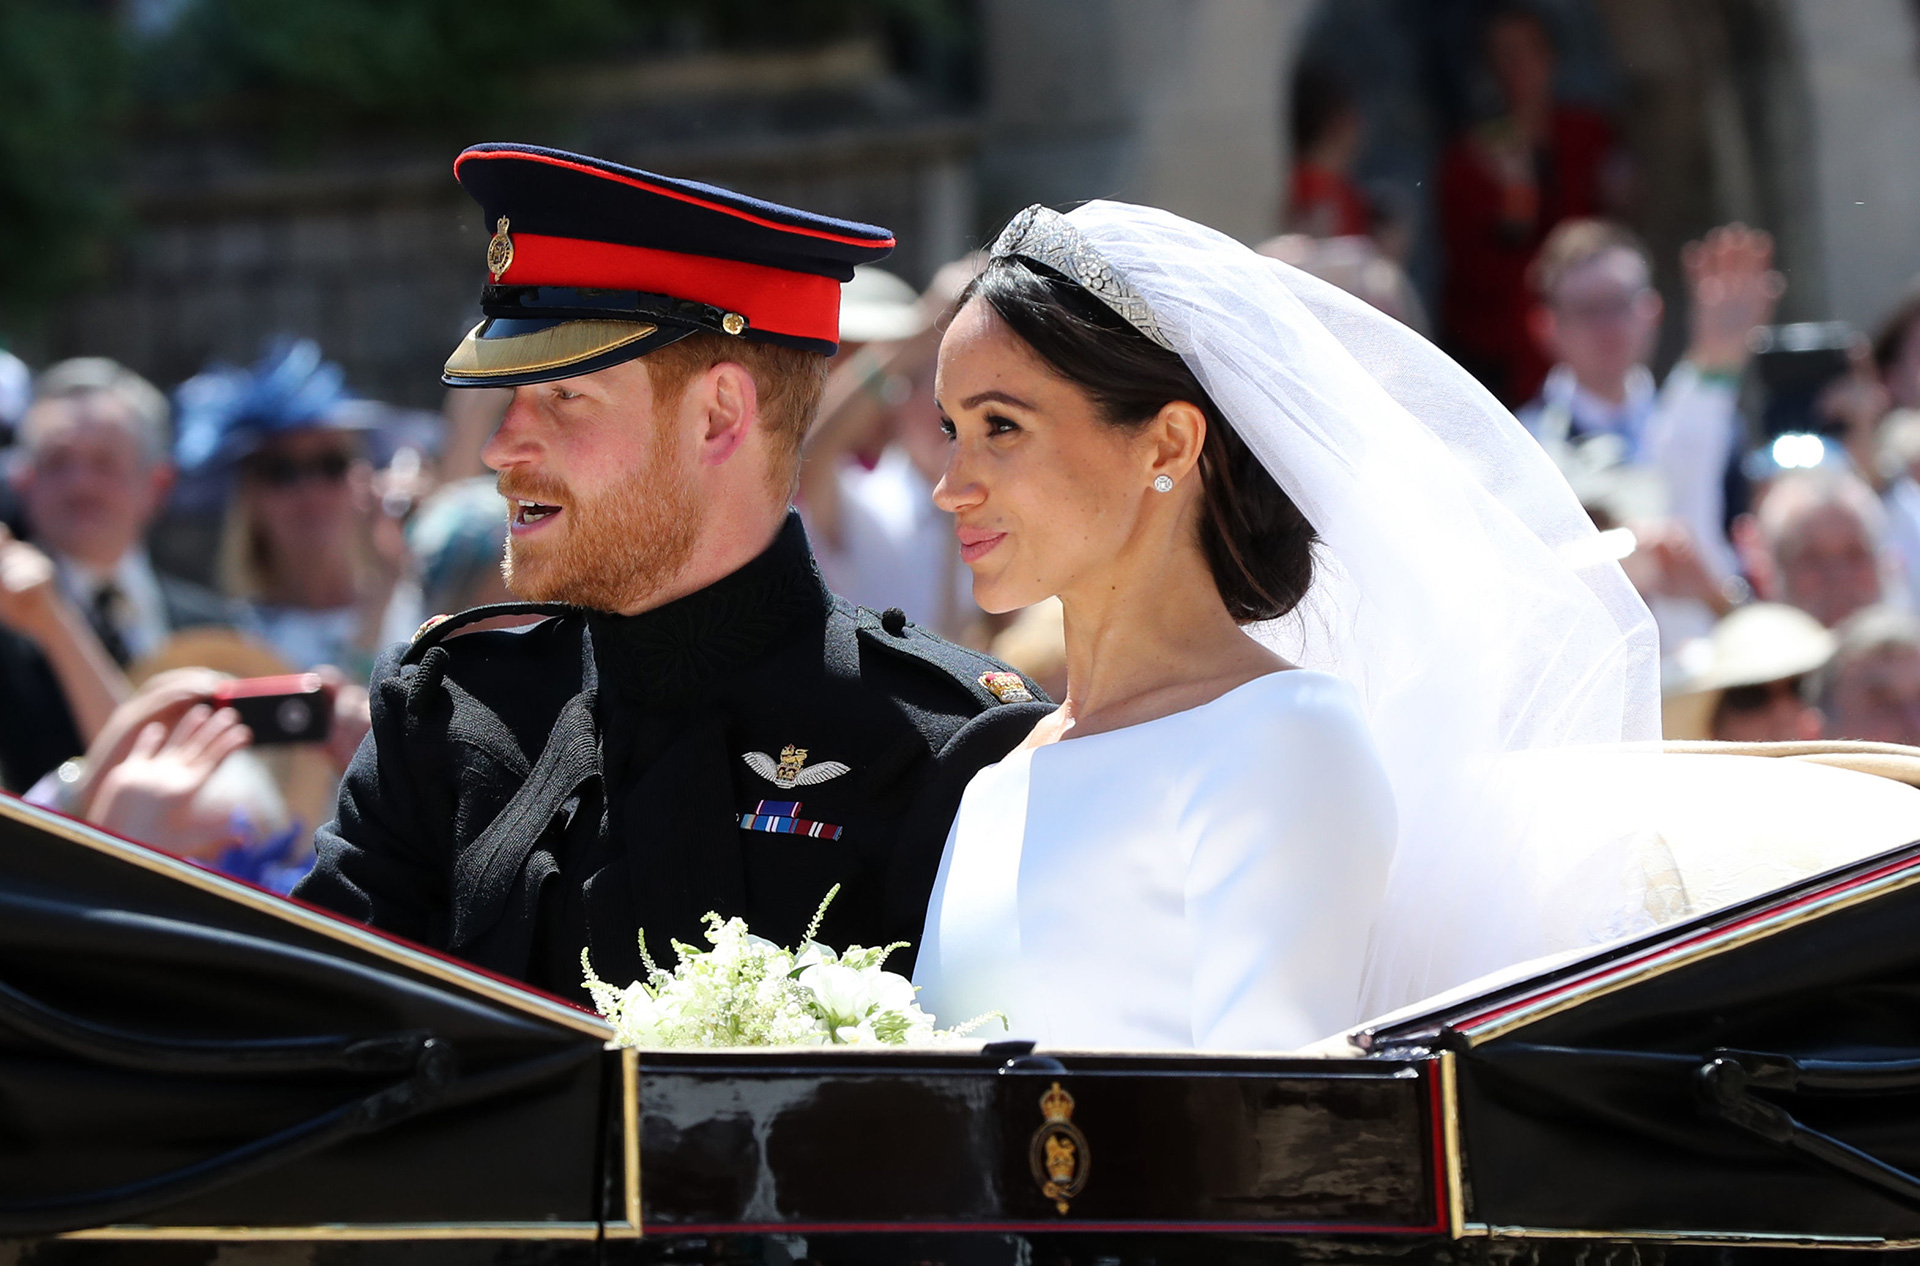 Meghan Markle and Prince Harry aka the Duke and Duchess of Sussex